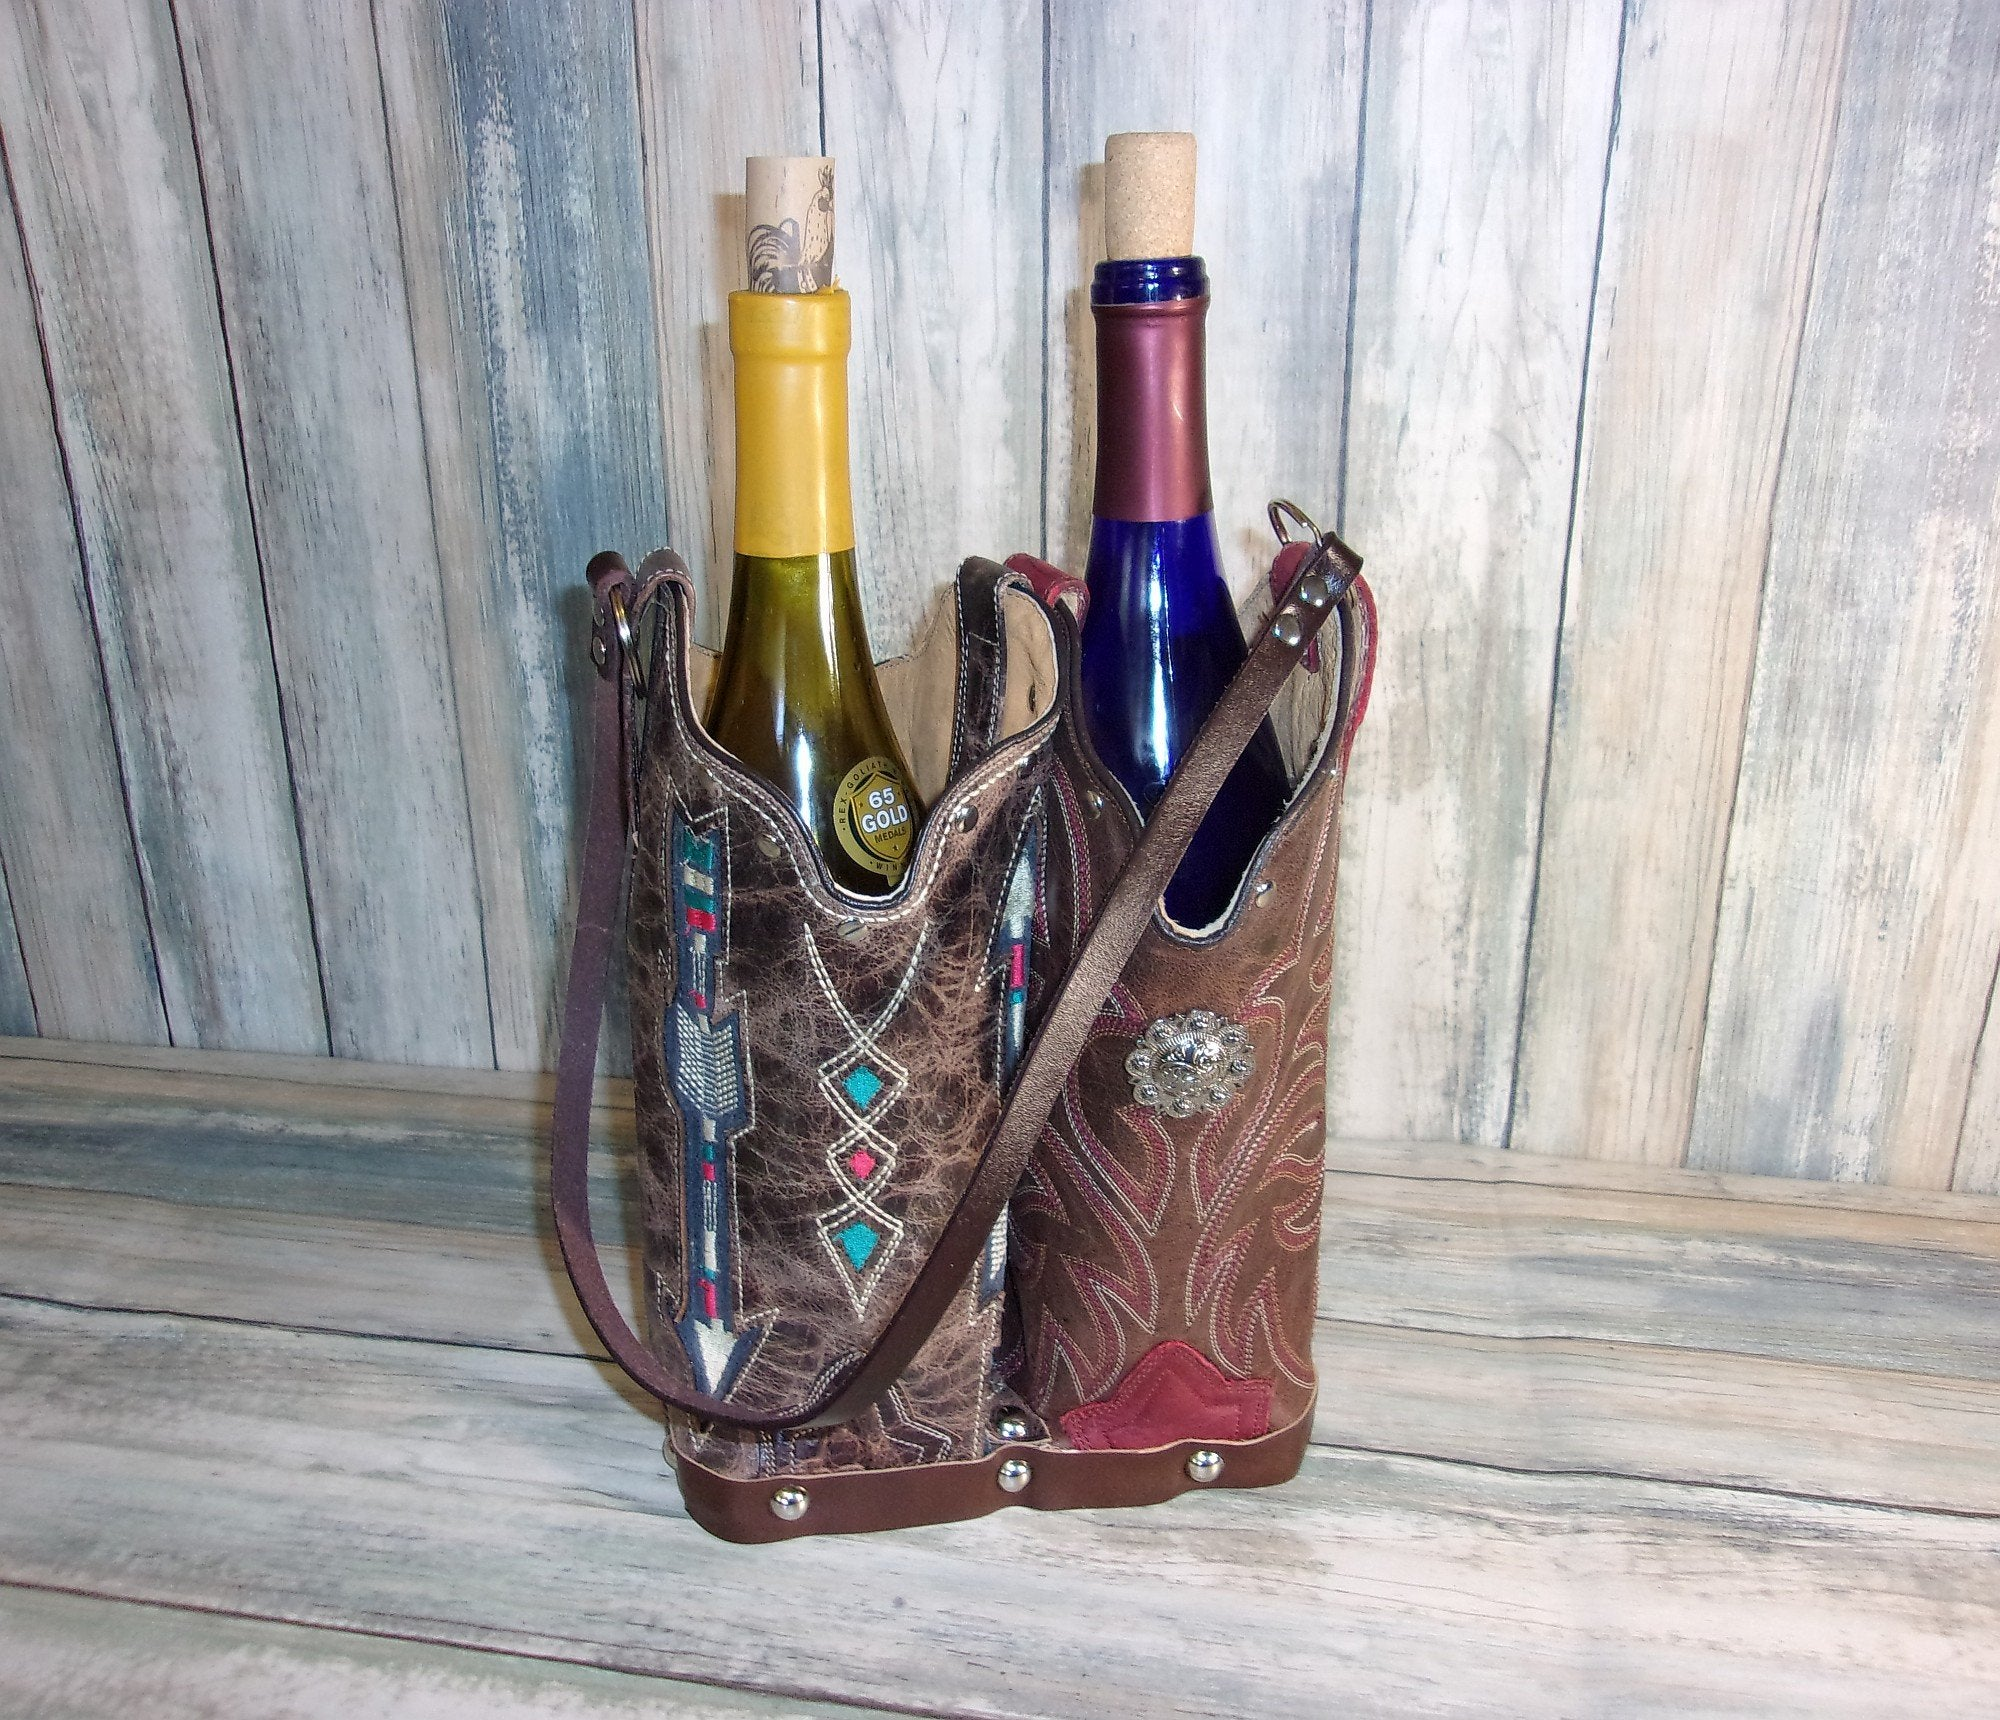 Double Cowboy Boot Leather Wine Tote PP51 - Distinctive Western Handbags, Purses and Totes